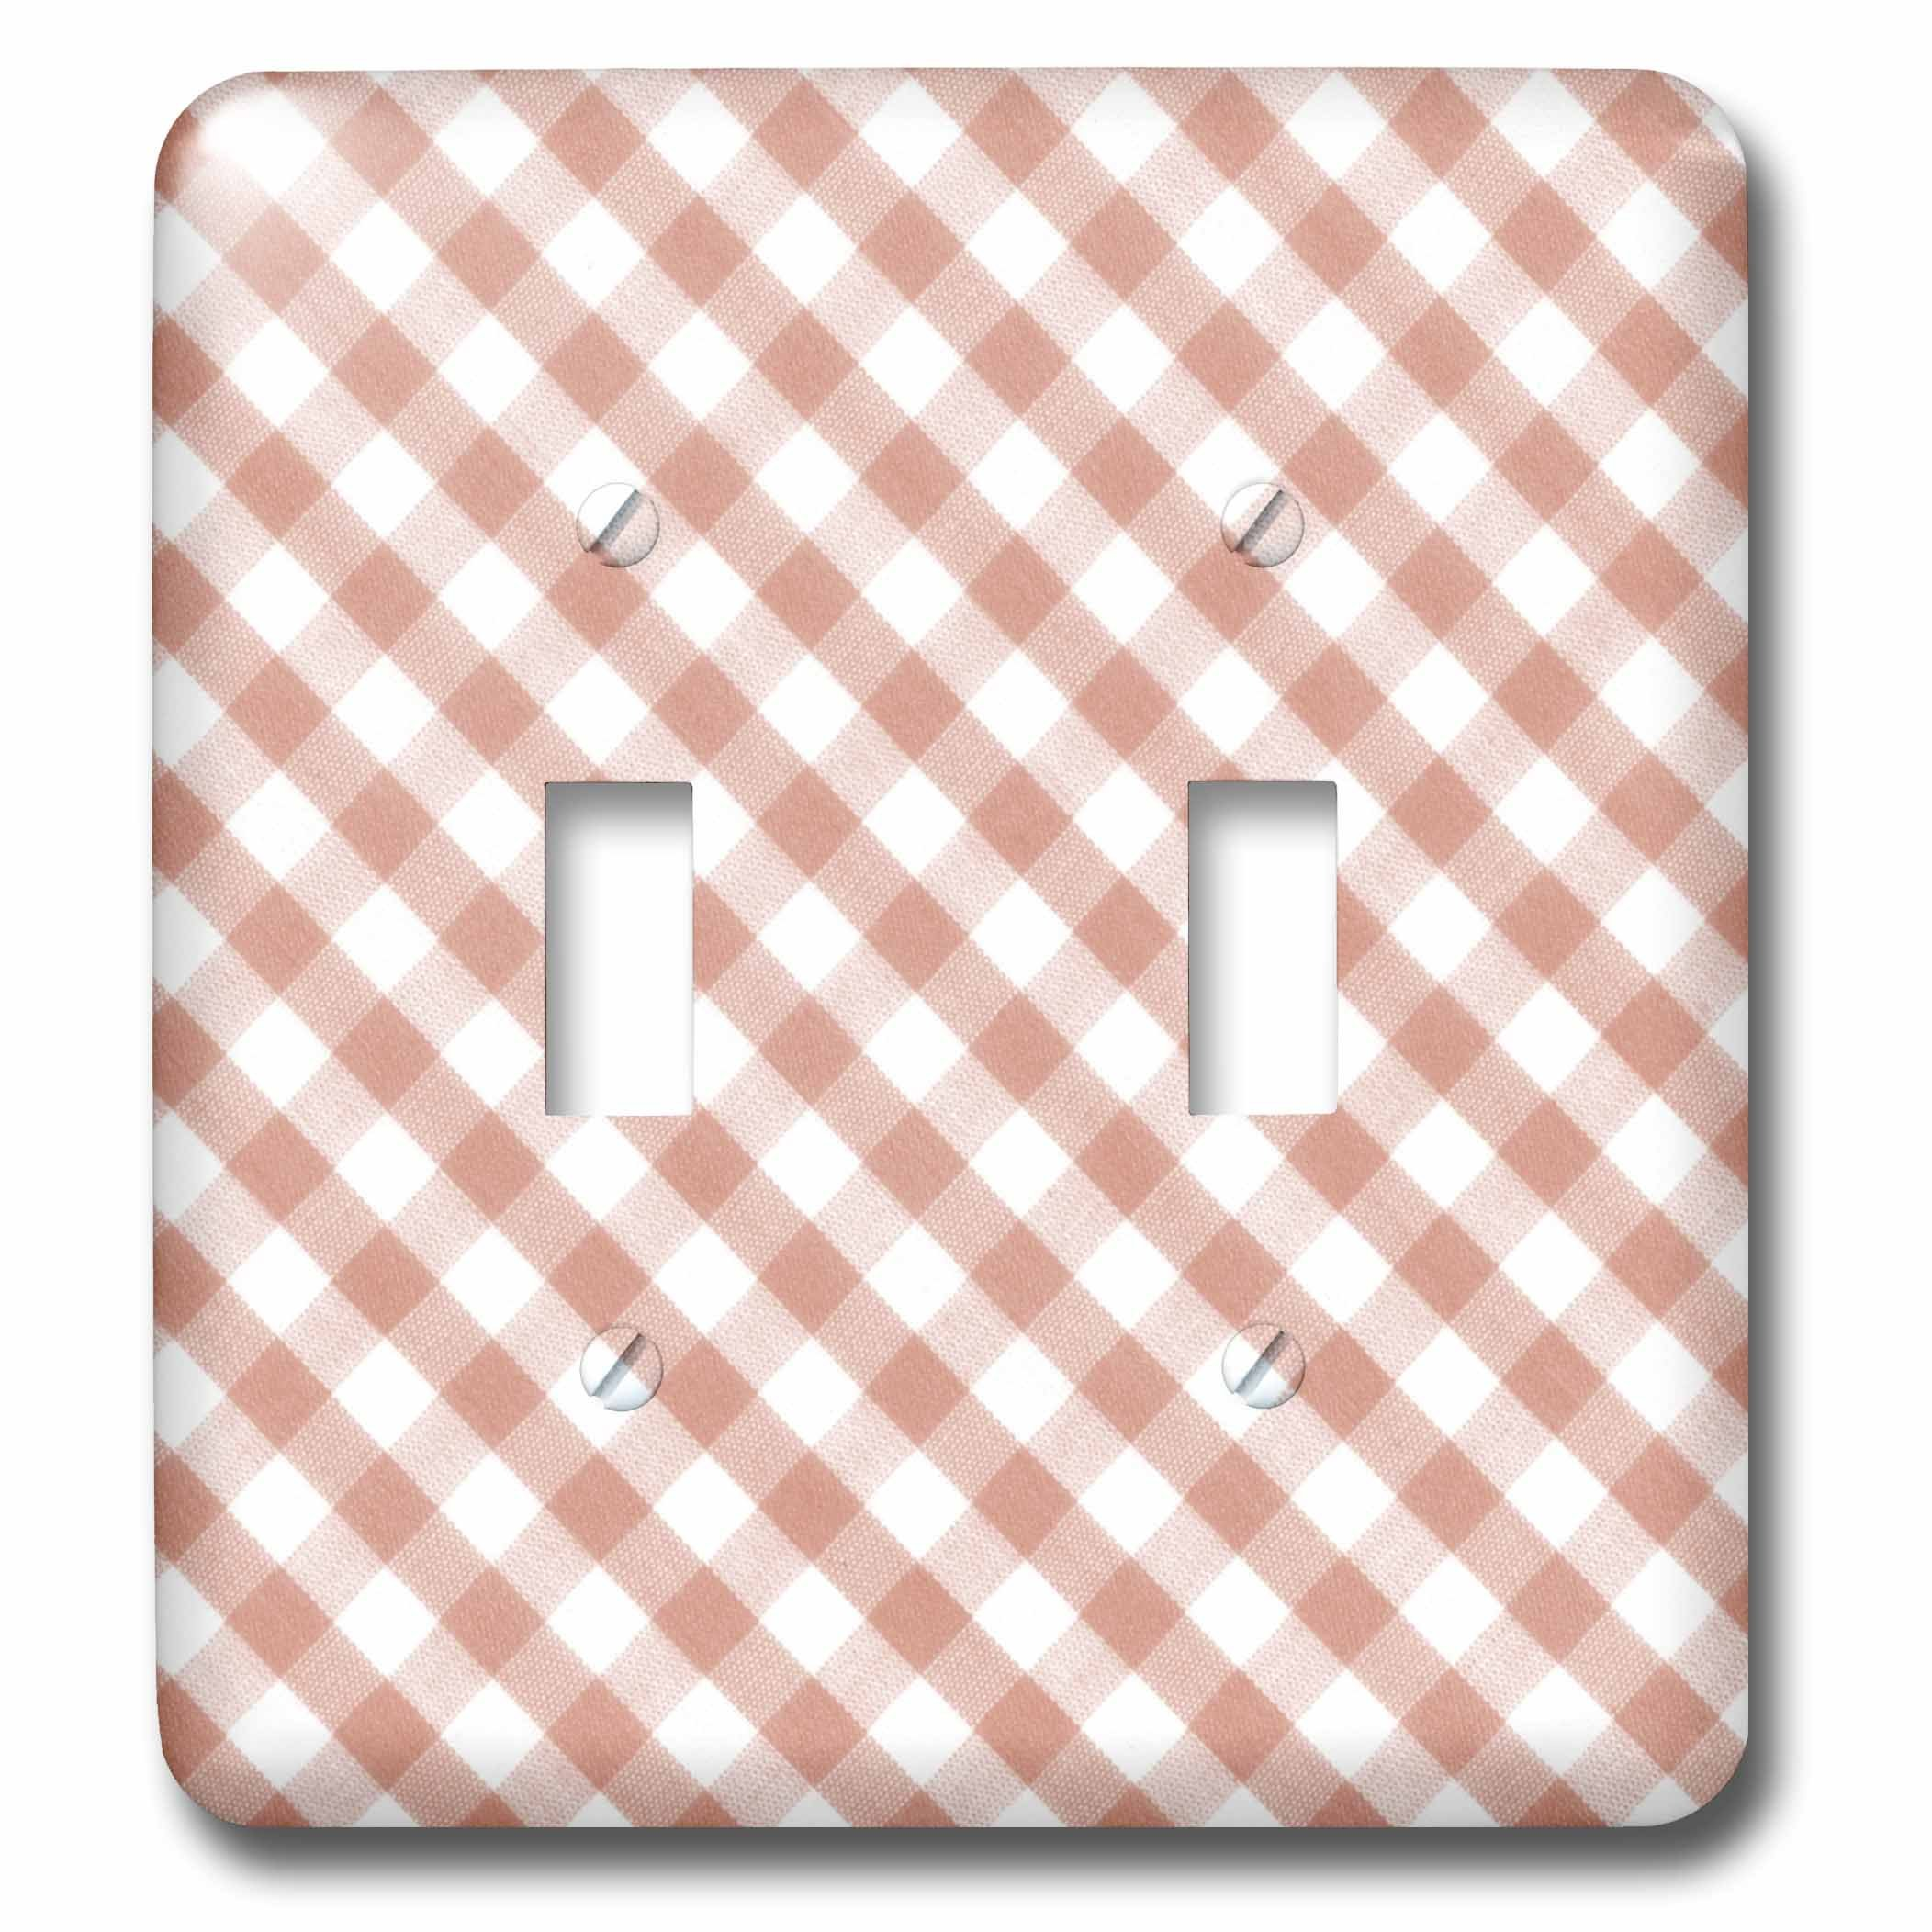 3dRose lsp_113026_2 Brown and White Gingham Pattern Traditional Checkered Rustic Checks Retro Country Kitchen Dining Double Toggle Switch